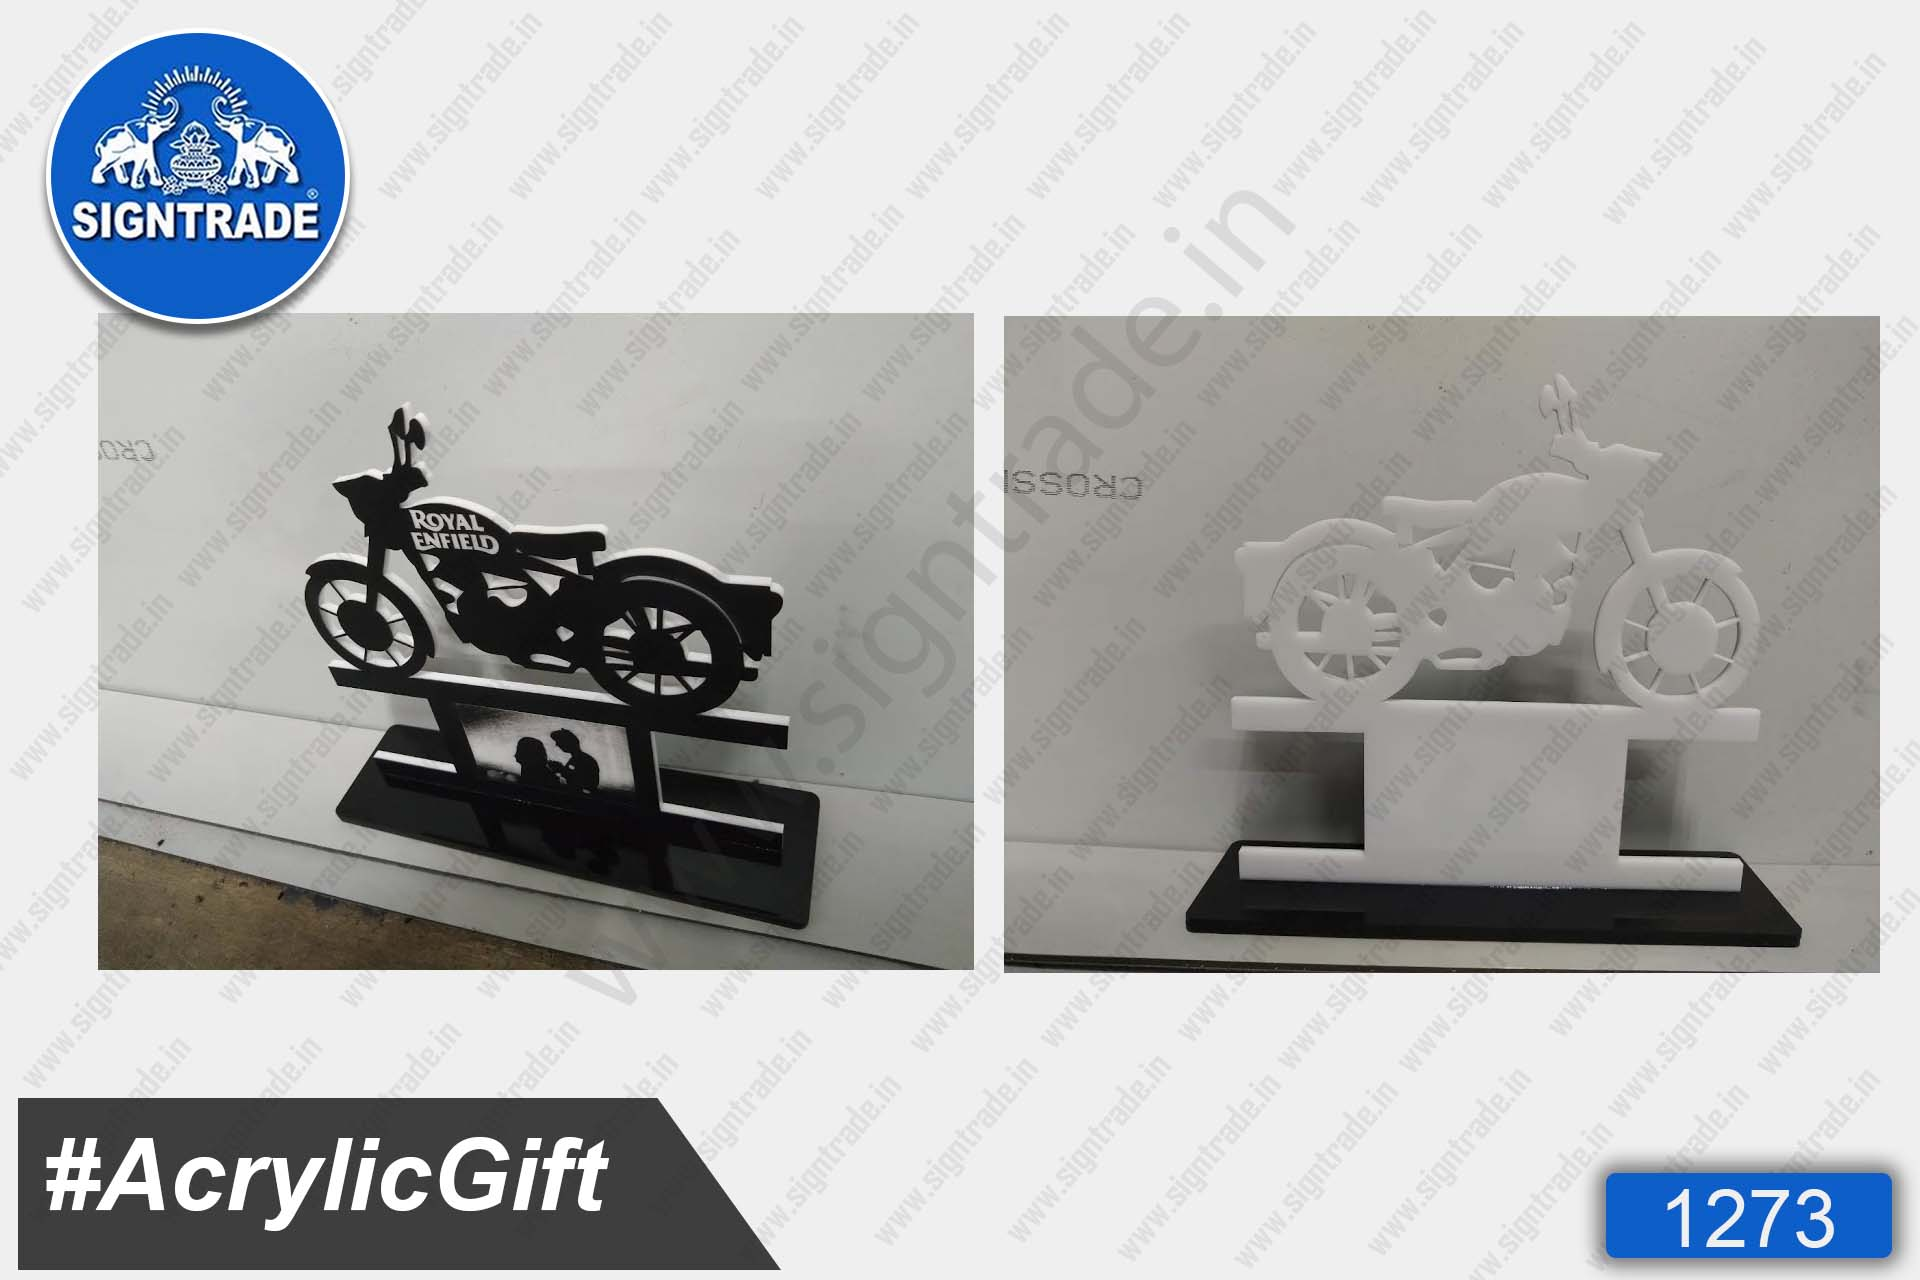 Acrylic Bike Sign Gift (Royal Enfield)